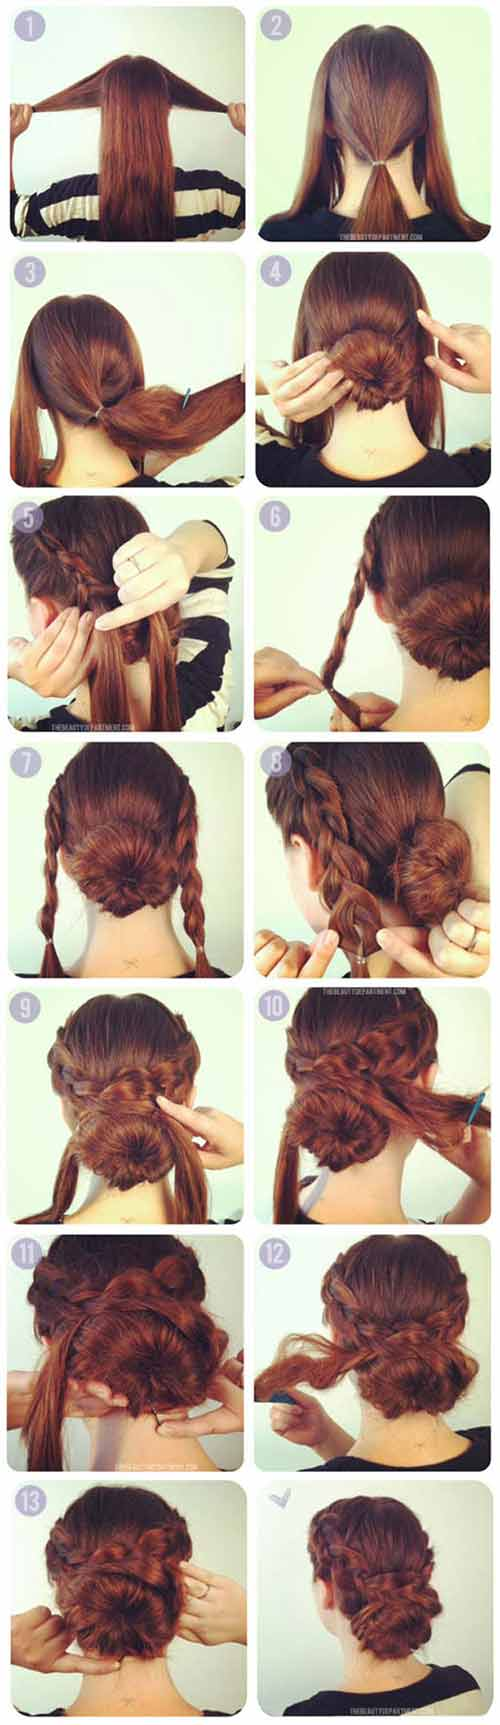 Overlapping Braid Updo